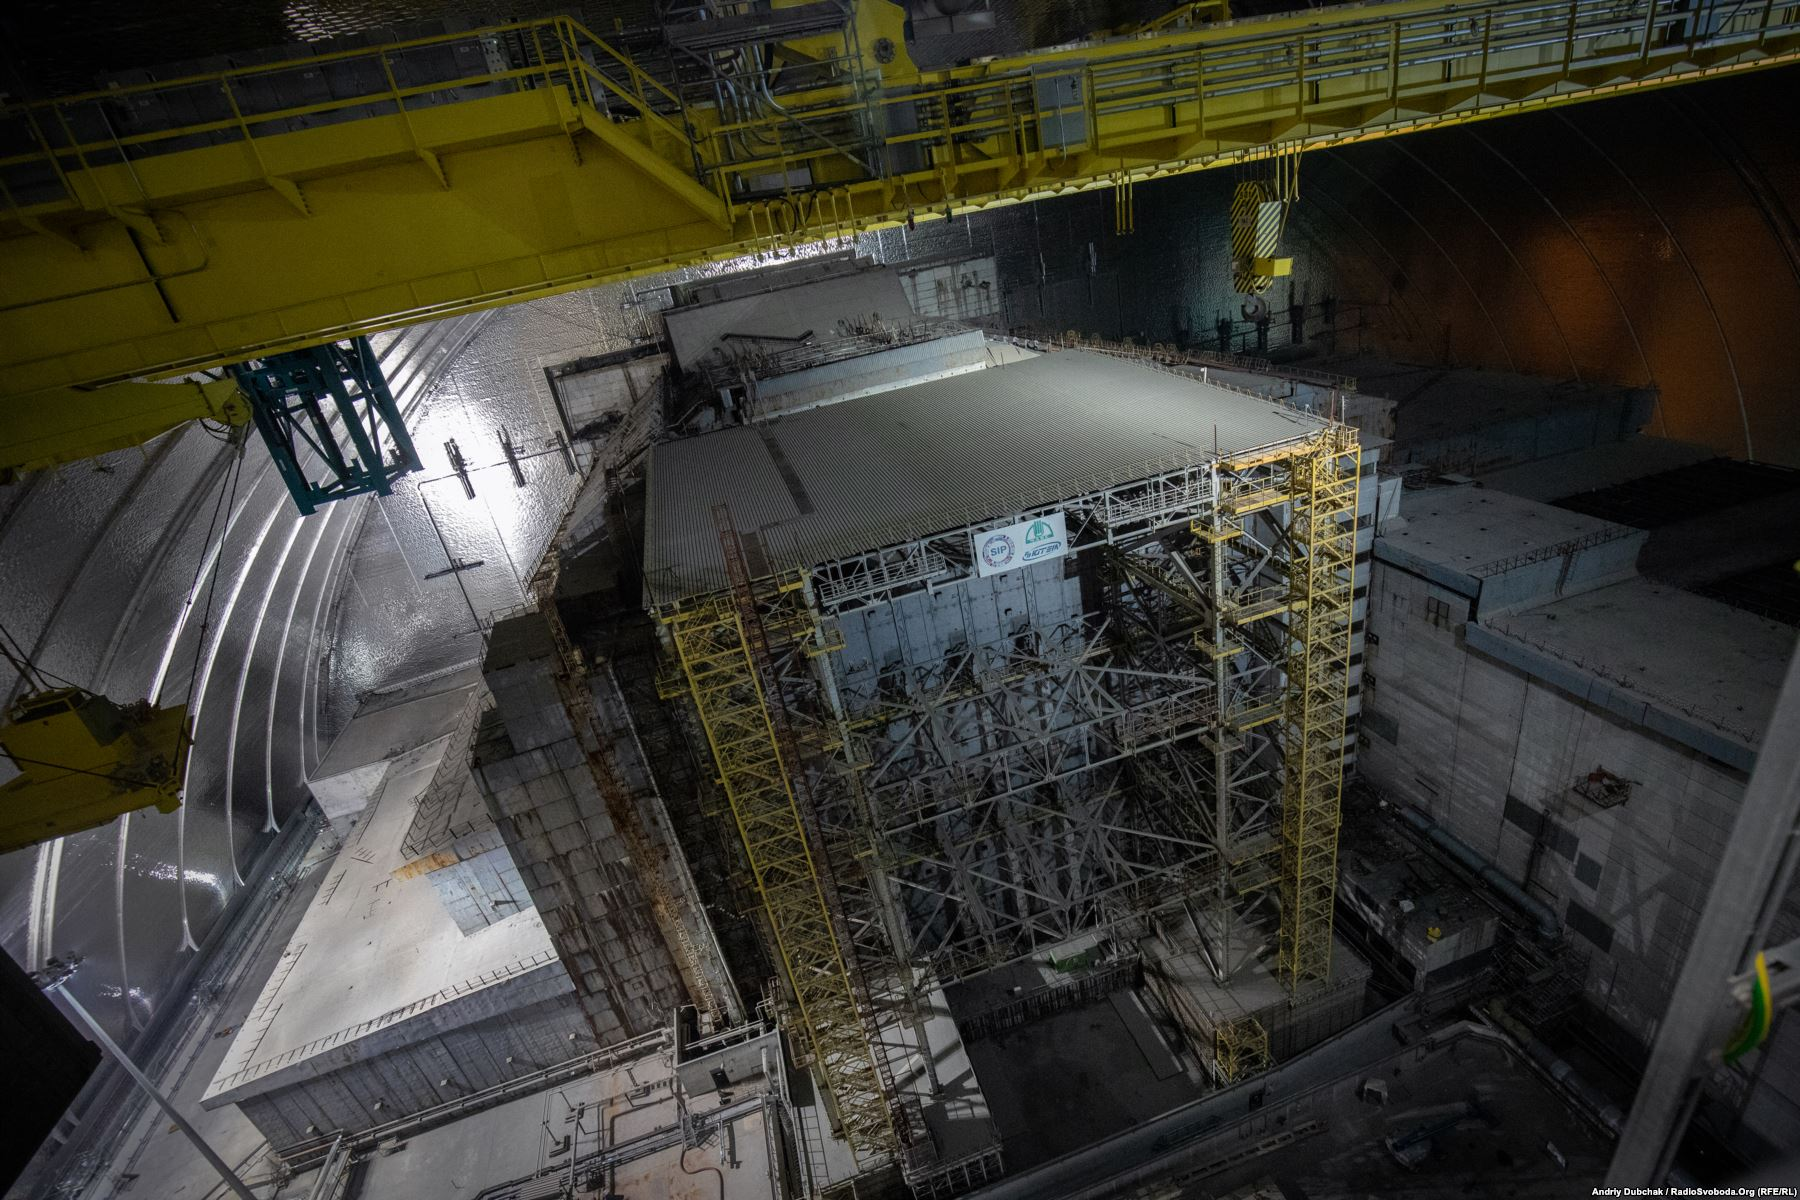 A new steel structure was built under the containment shield to support the decaying concrete sarcophagus in Chernobyl's reactor number four. Eventually, officials plan to dismantle the sarcophagus and remove the remaining nuclear fuel from the plant. Photo by: Andriy Dubchak